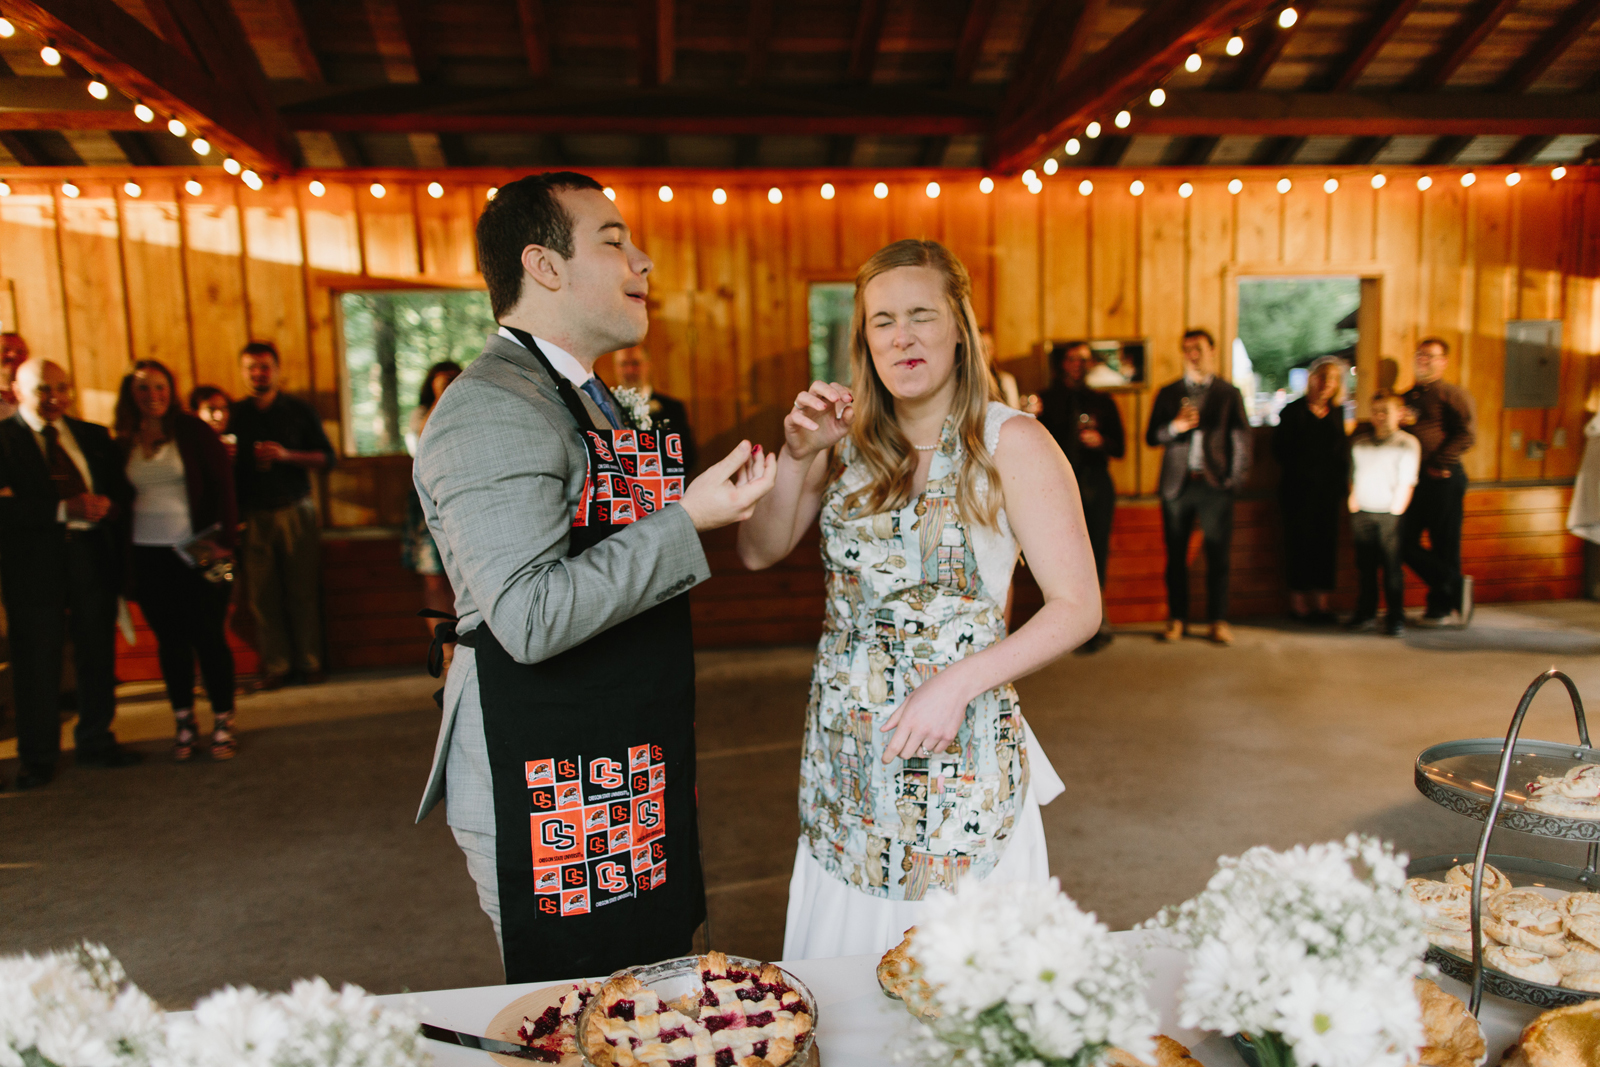 The bride and groom cut pie at wedding reception at Bridal Veil Lakes in Corbett, OR